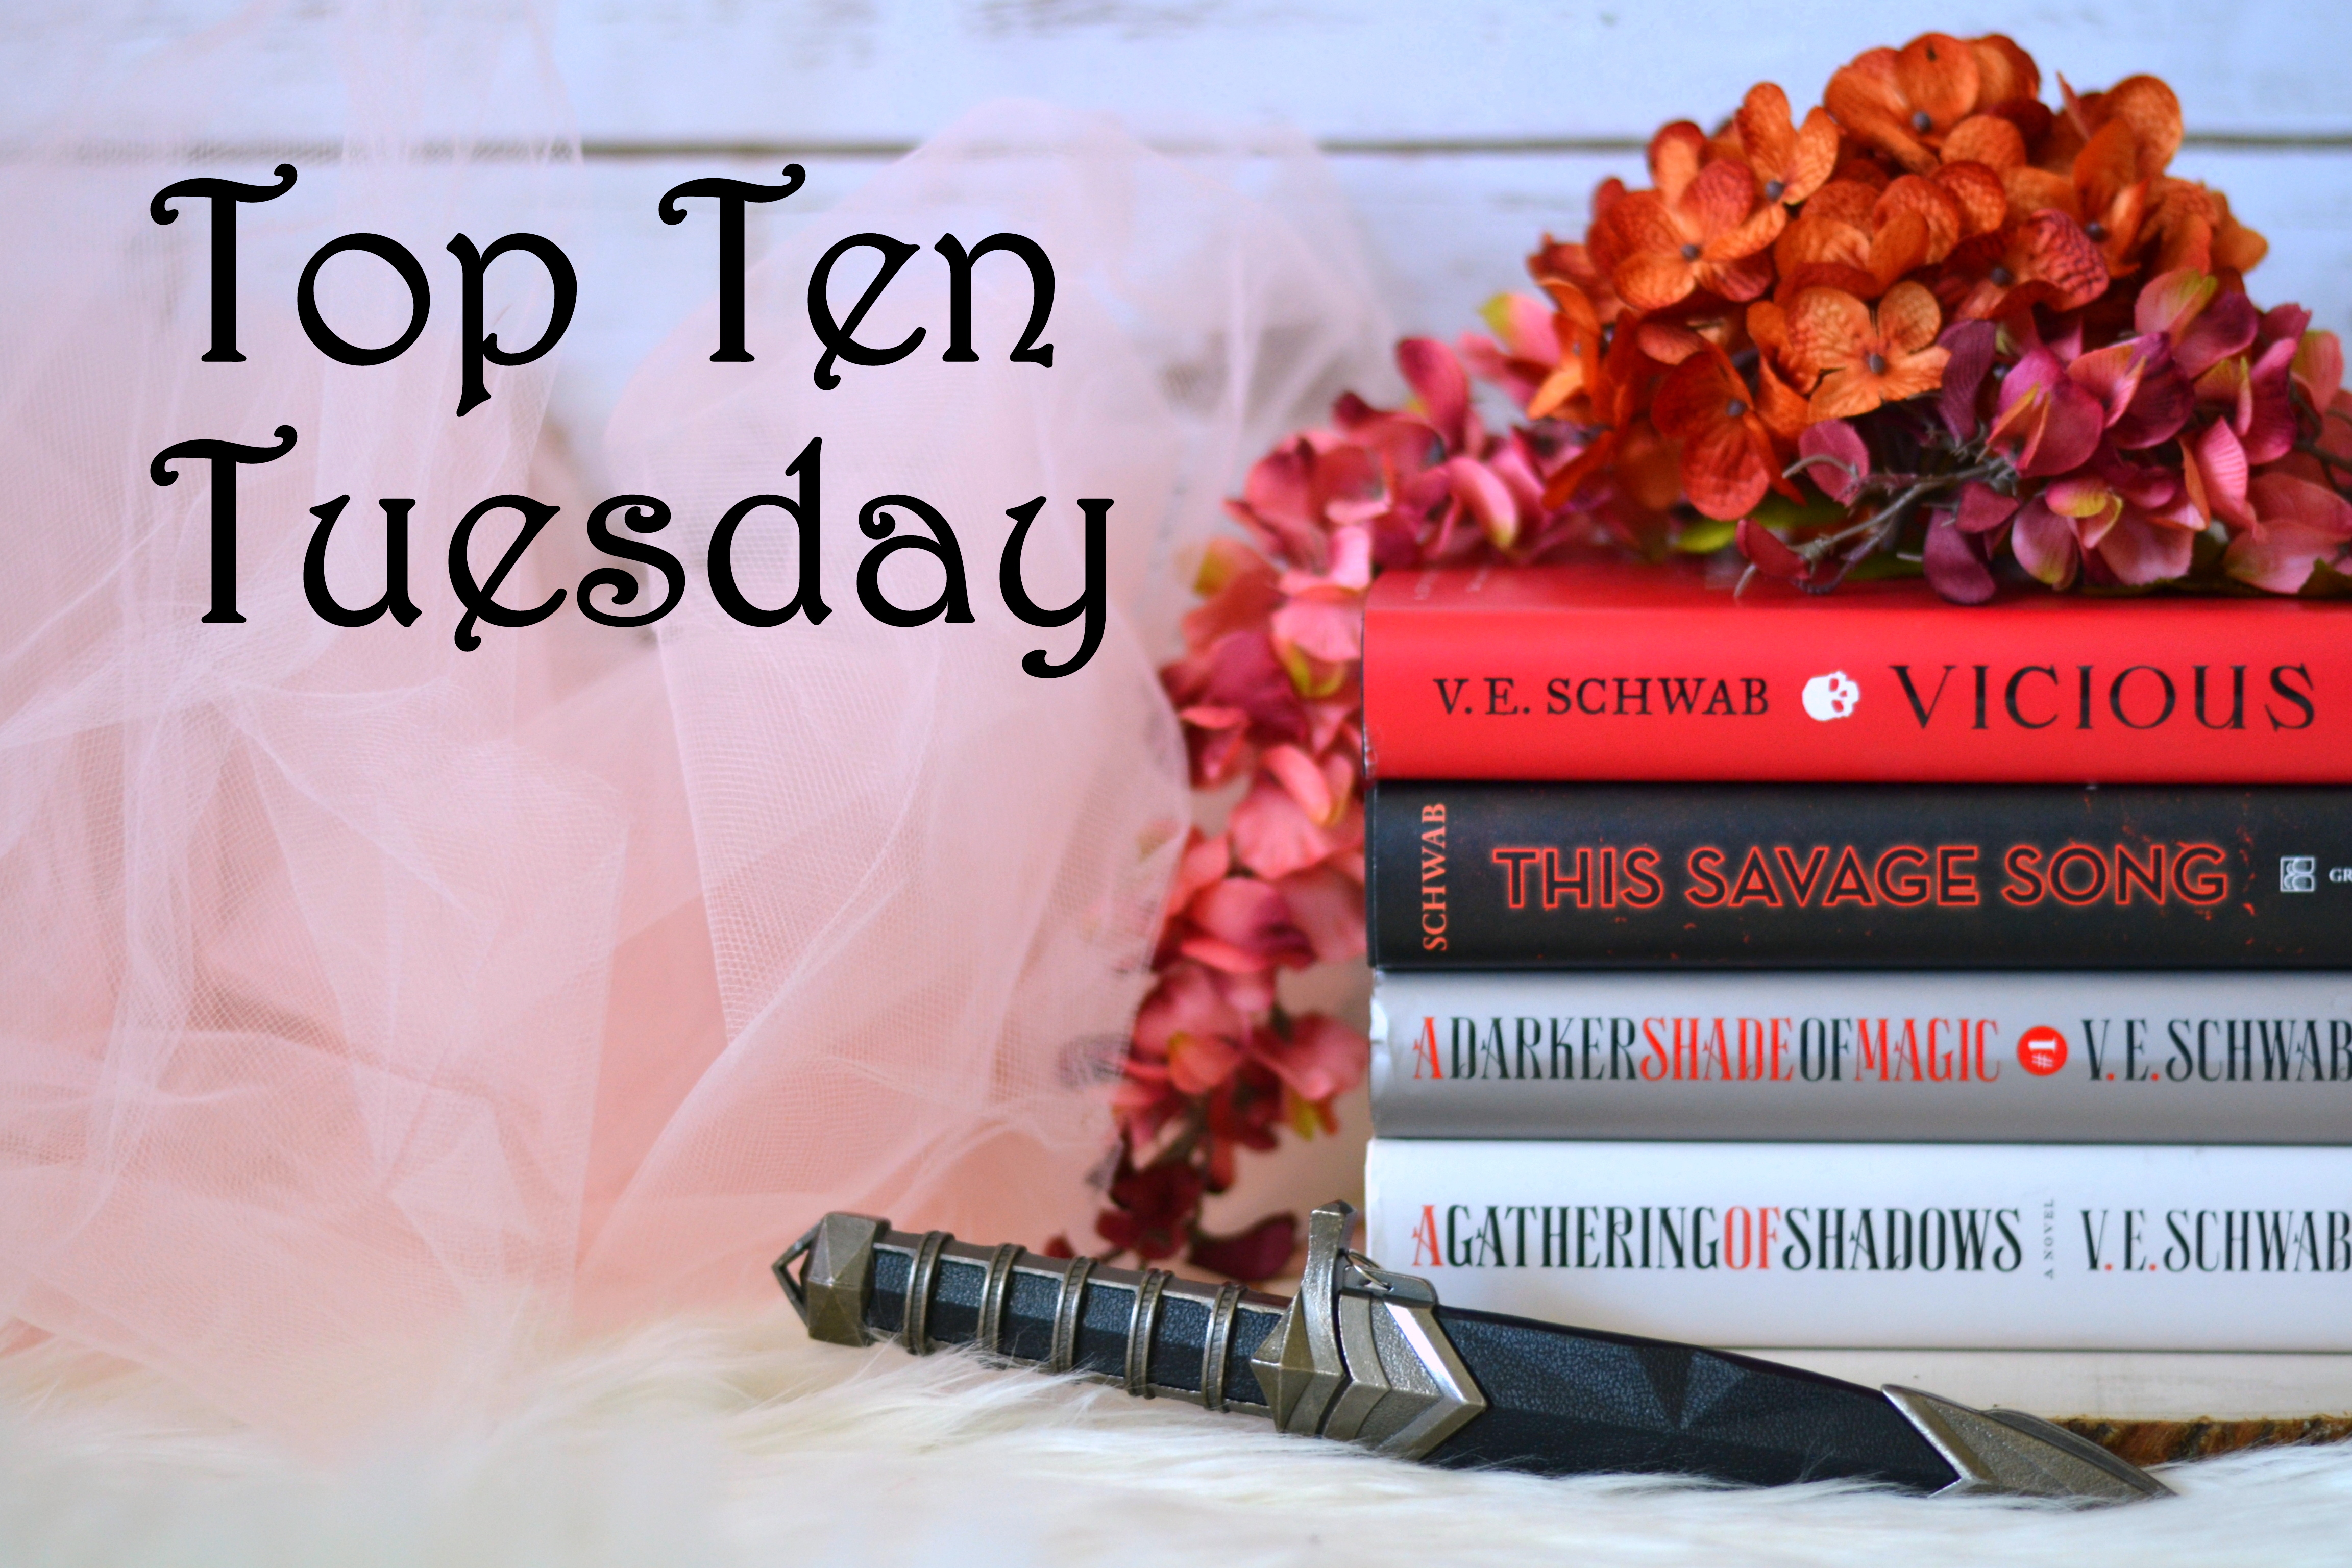 Top Ten Tuesday: Fall Fantasy Releases I'm Dying to Get My Hands On